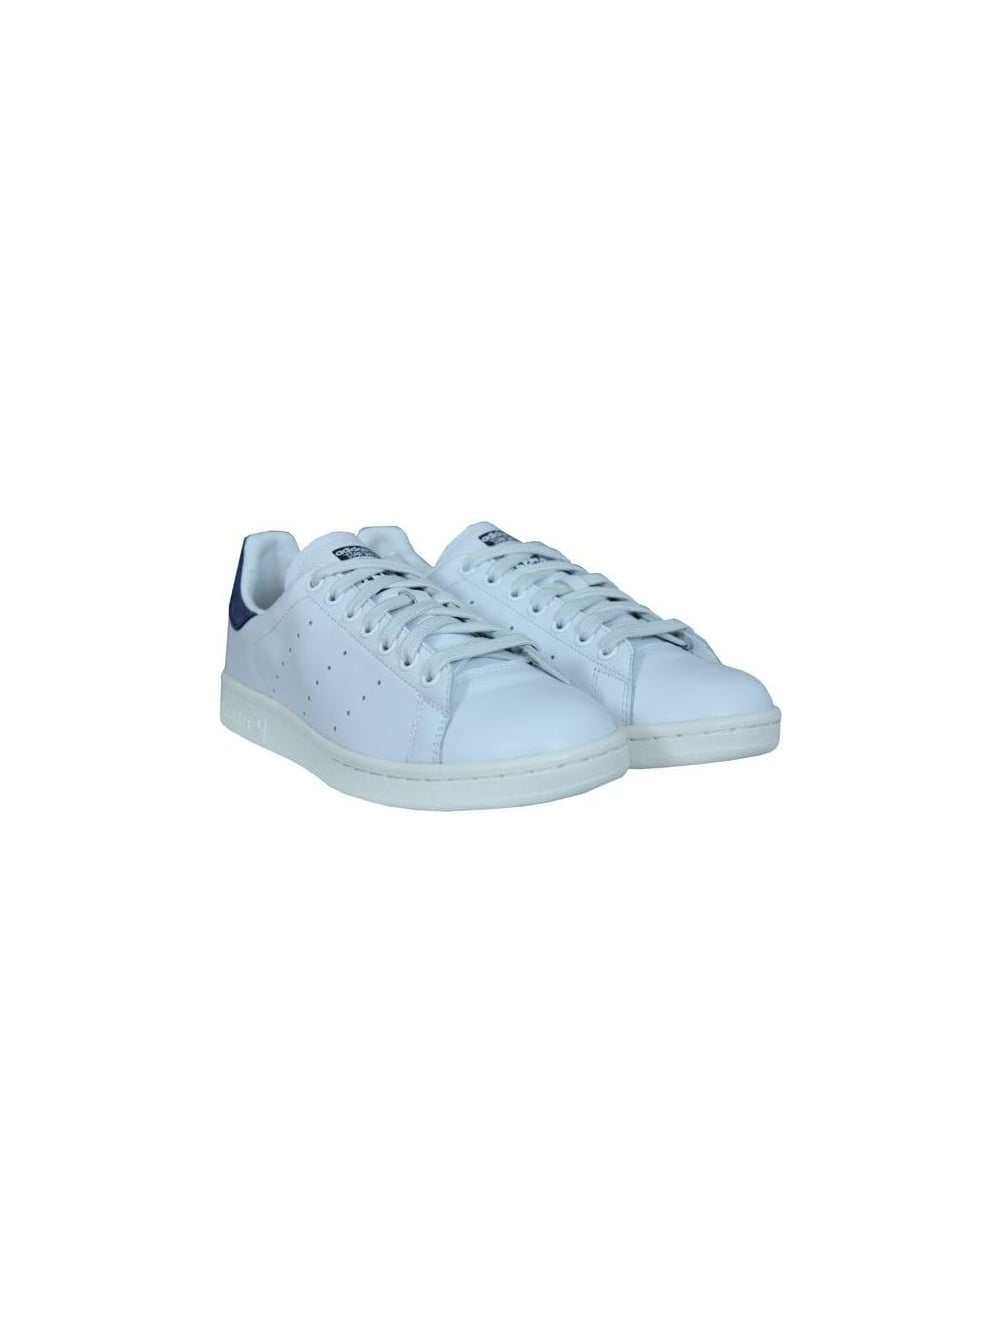 save off 10a3a 6688f Stan Smith - Neo White Navy